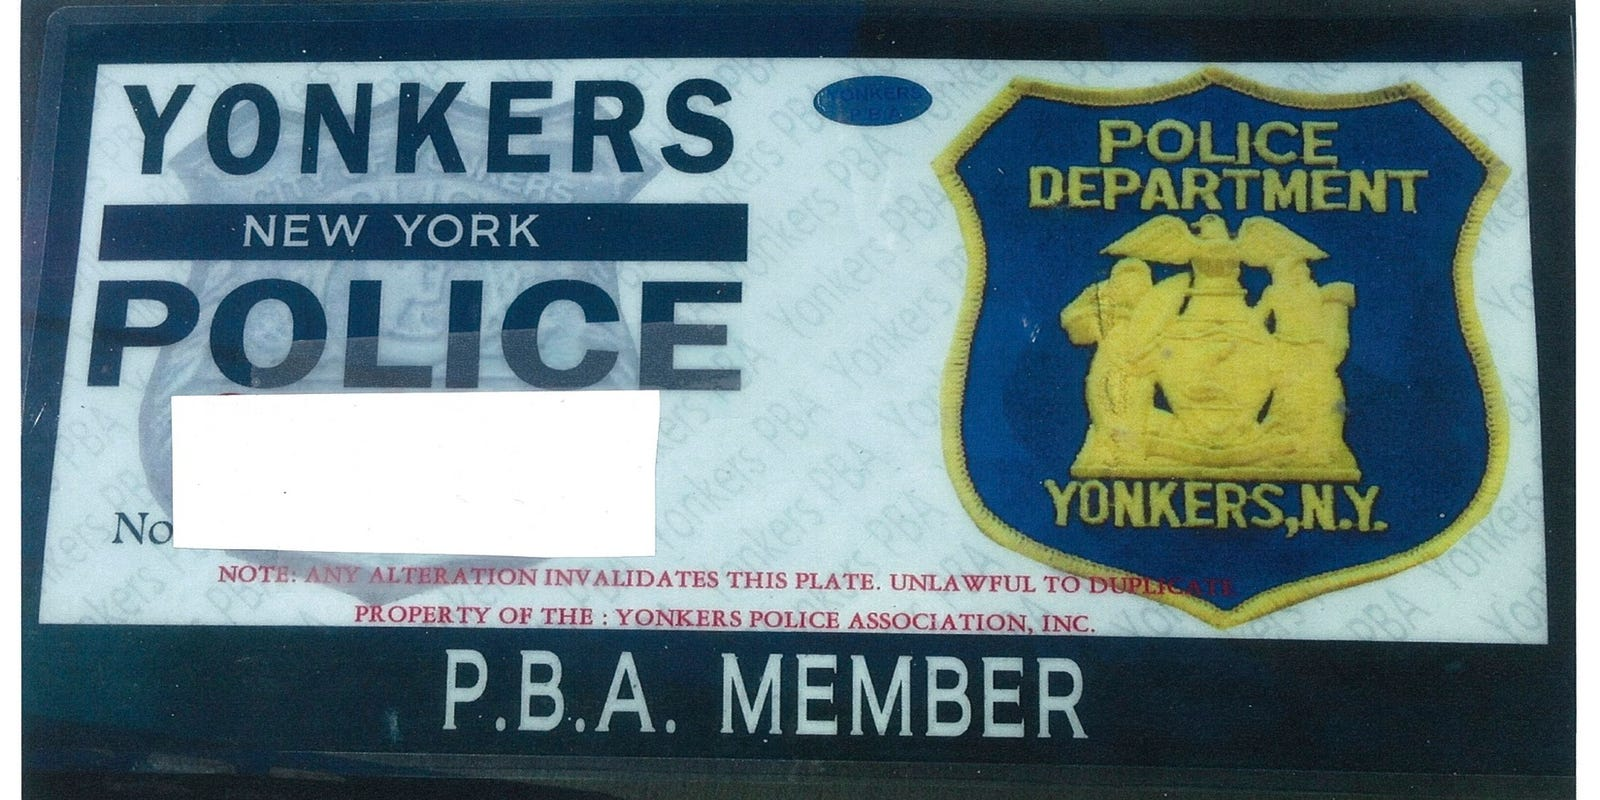 Yonkers Parking Tickets >> Yonkers Parking Passes Abused To Duck Laws Report